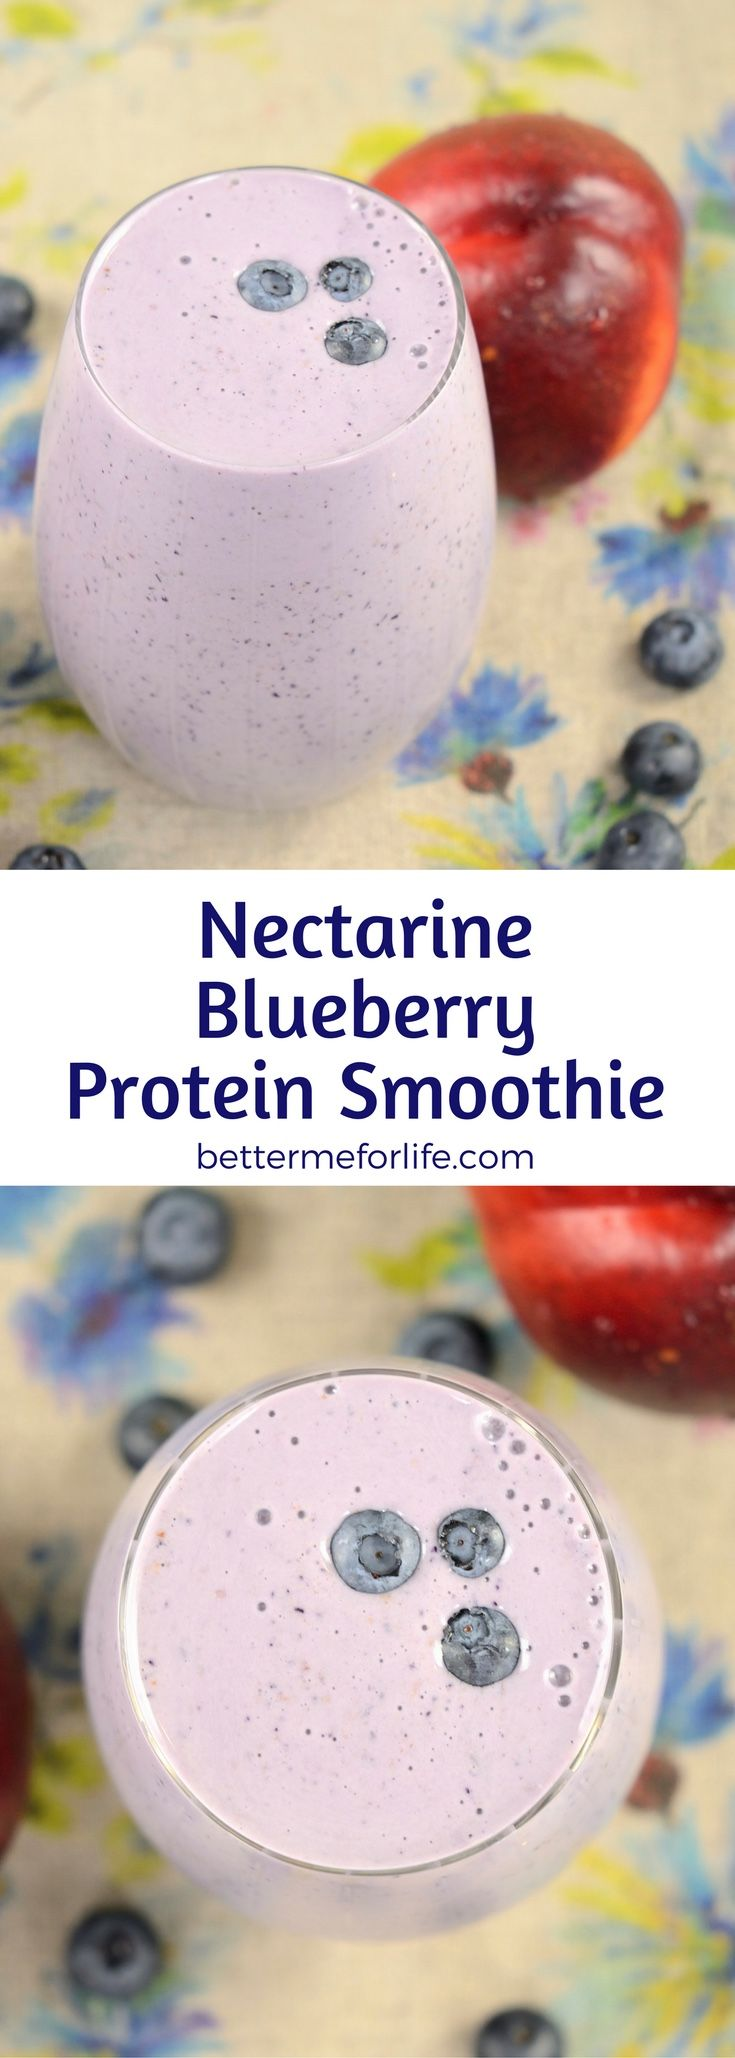 This nectarine blueberry flax protein smoothie is low in calories and high in fiber - making it the perfect weight loss smoothie. Find the recipe on BetterMeforLife.com | protein smoothie recipes | protein smoothies | healthy protein smoothies | protein smoothies for weight loss | protein smoothie recipes | protein smoothie recipes weight loss | protein smoothie recipes diet #proteinsmoothies #proteinsmoothierecipes #proteinpowder #proteinsmoothie #protein_smoothie